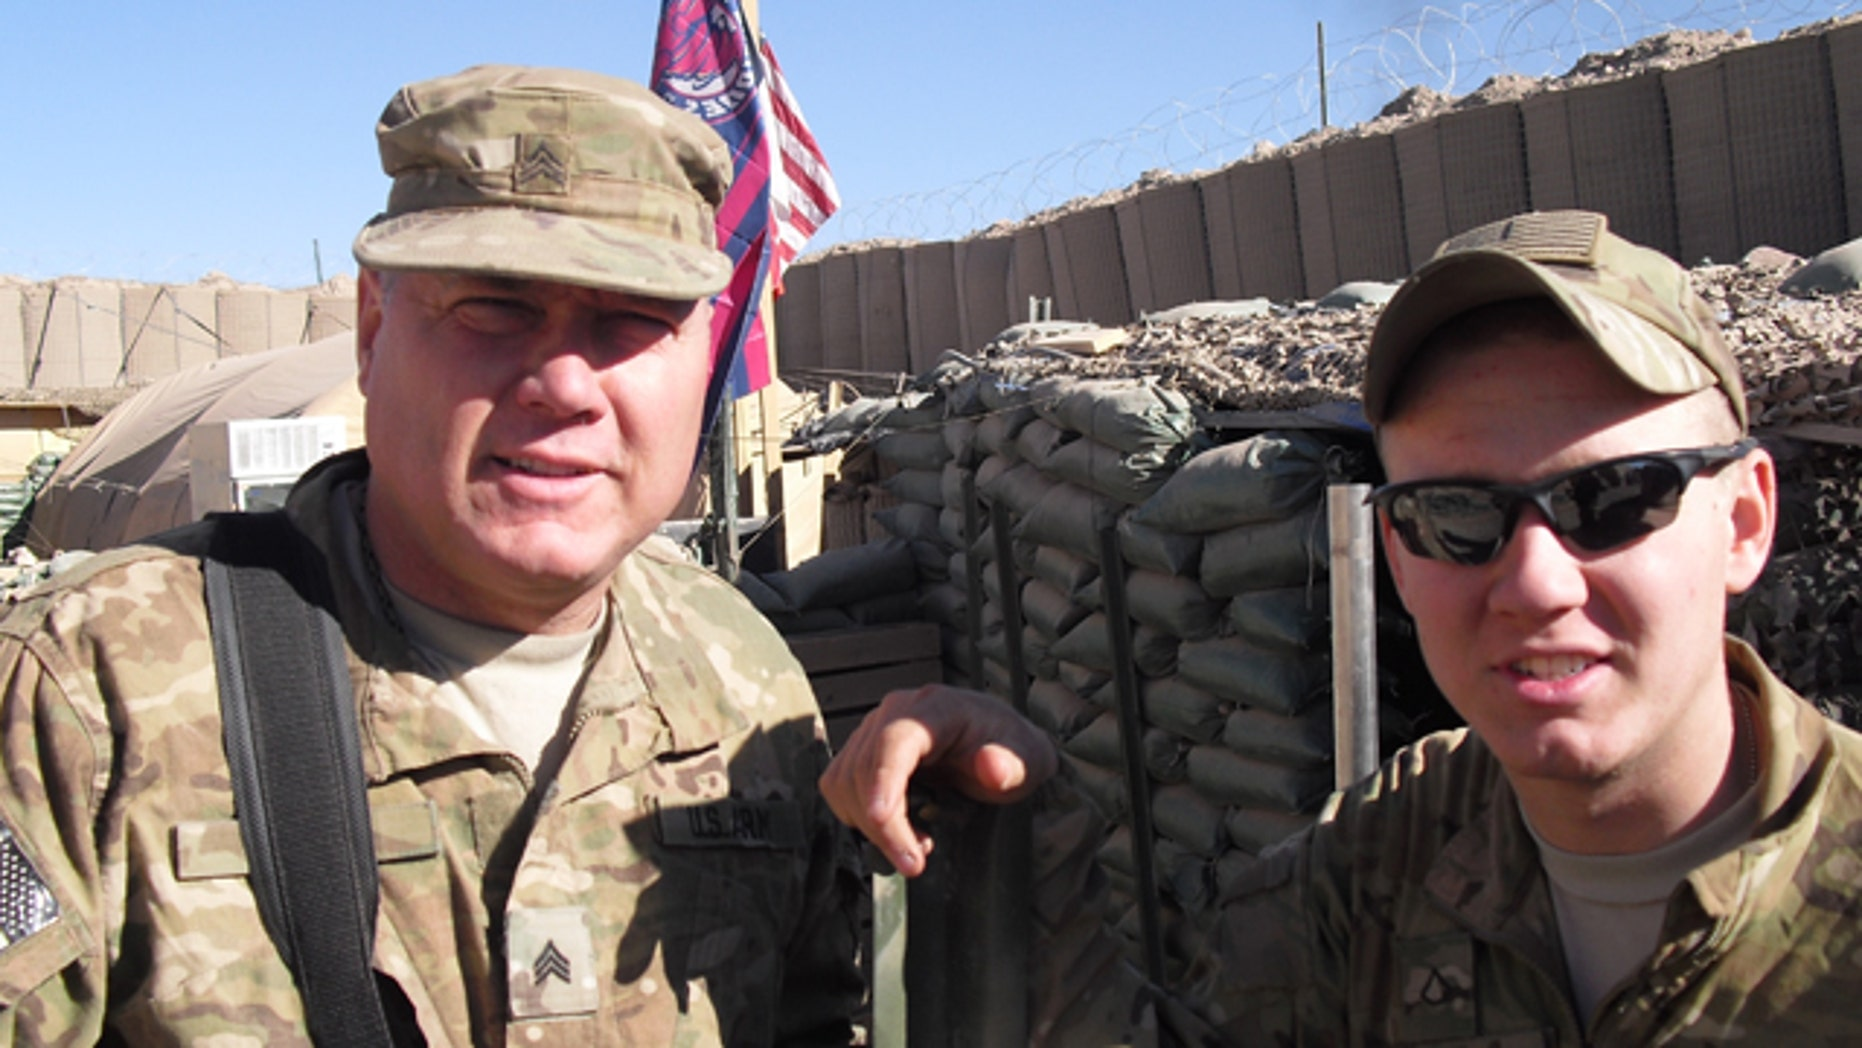 Army Sgt. Chris Meis, 47, and his 19-year-old son, Pvt. 1st Class Caleb Meis, of St. Charles, Iowa, now serve in Afghanistan in different platoons within Charlie Company 1-168, 2nd Brigade Combat Team, 34th Infantry Division.